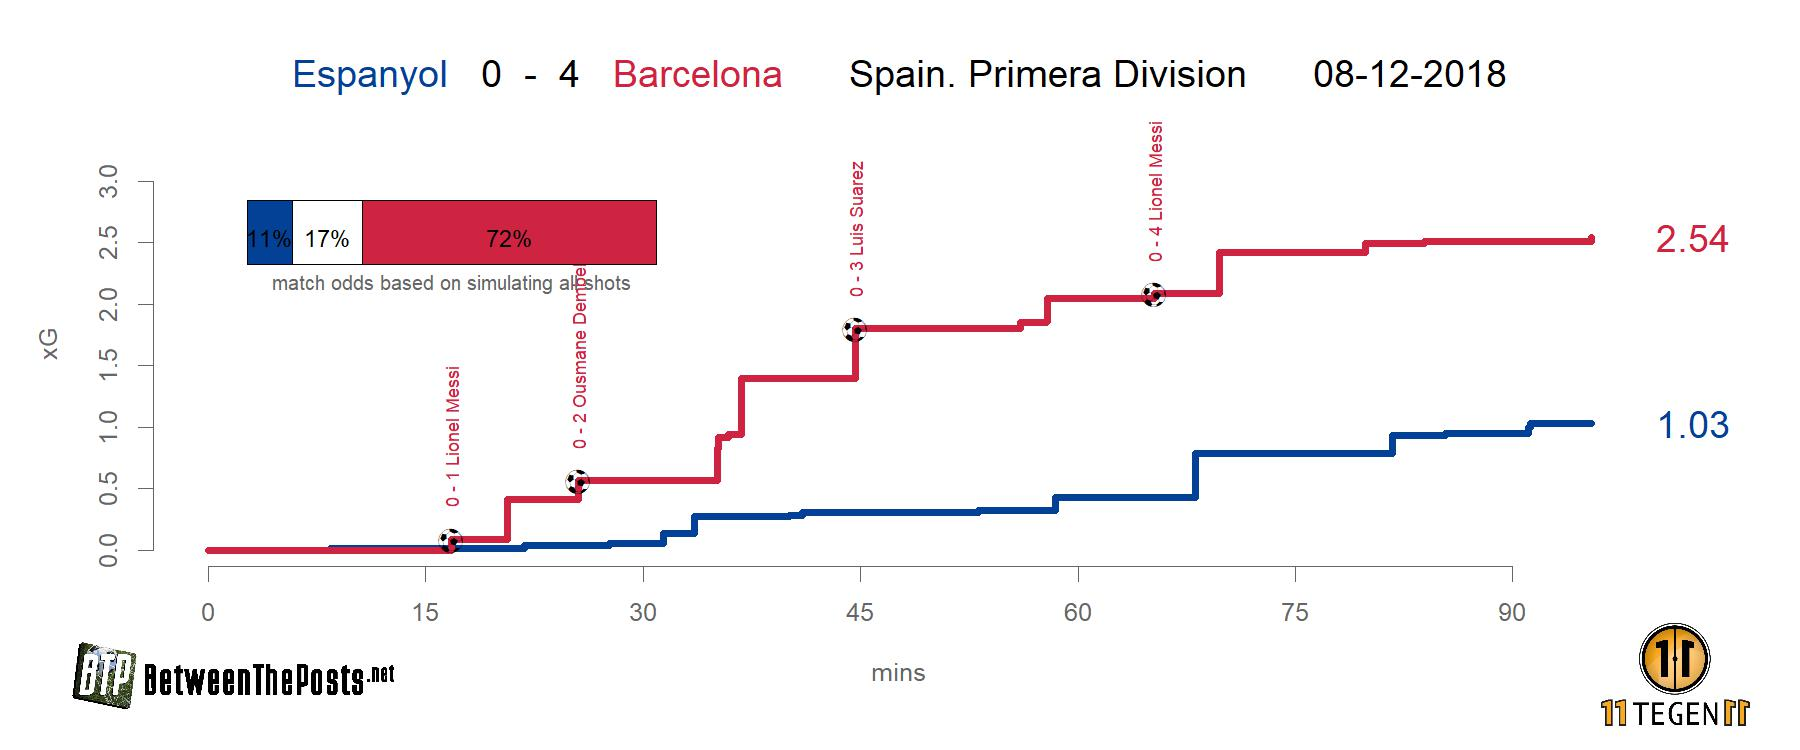 [img]https://betweentheposts.net/wp-content/uploads/2018/12/2018-12-08-1232929-xG-plot-Espanyol-0-4-Barcelona.jpg[/img]